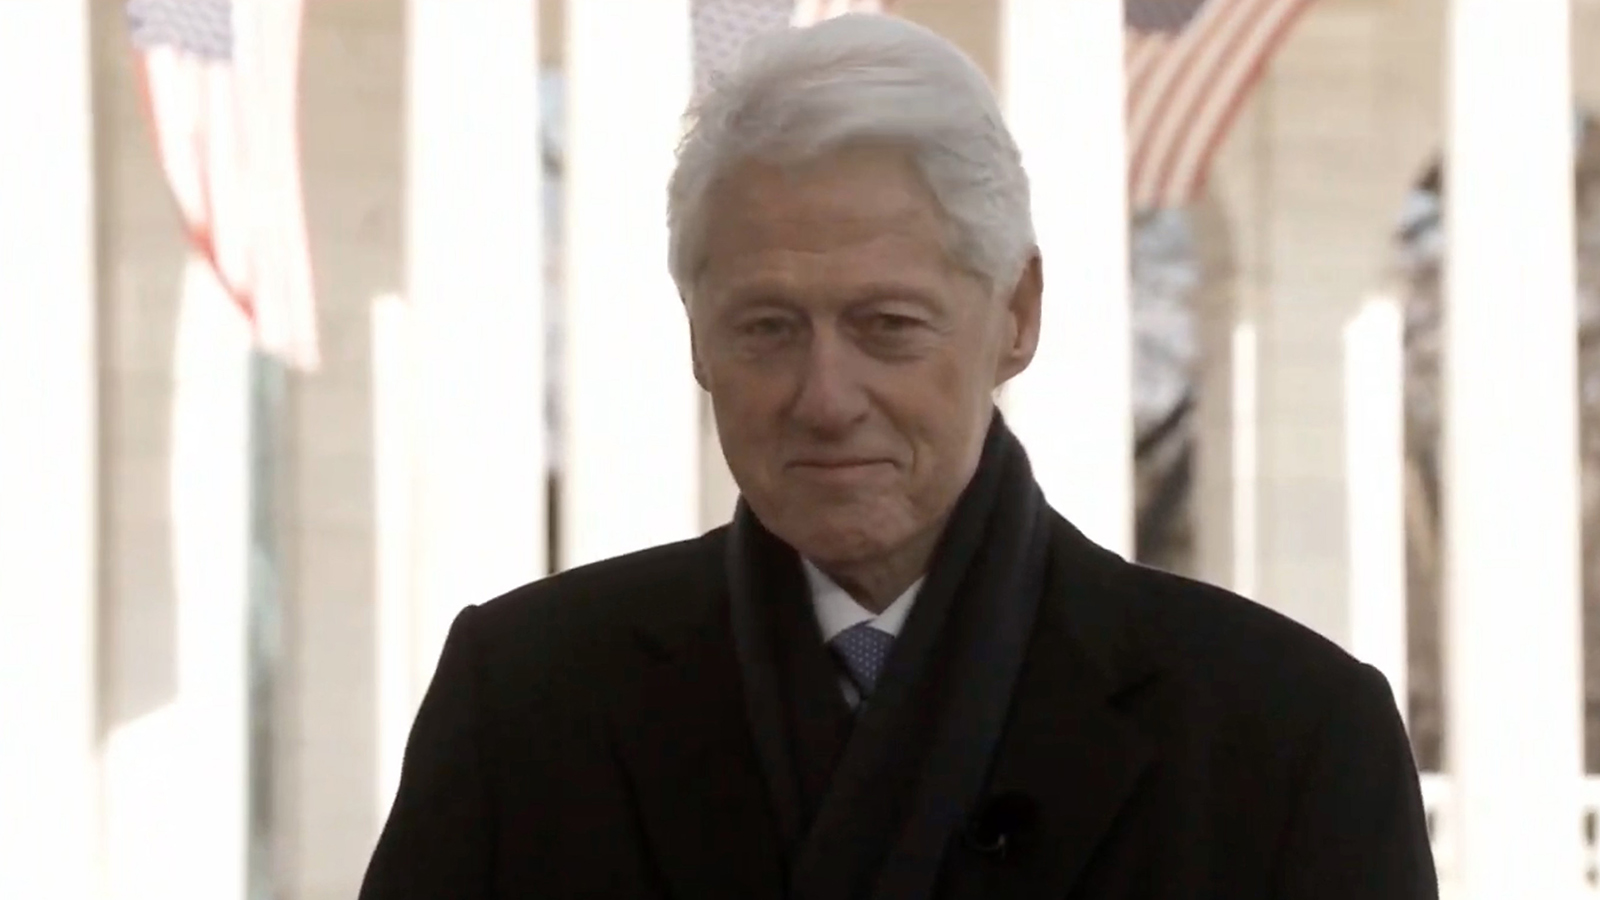 In this screengrab, former President Bill Clinton speaks during the Celebrating America Primetime Special on January 20.